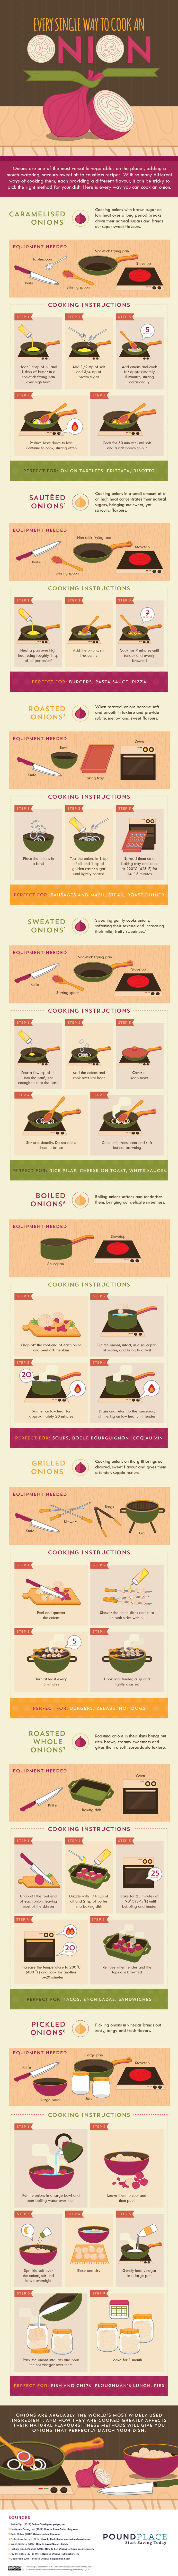 Different Ways To Cook An Onion - Infographic